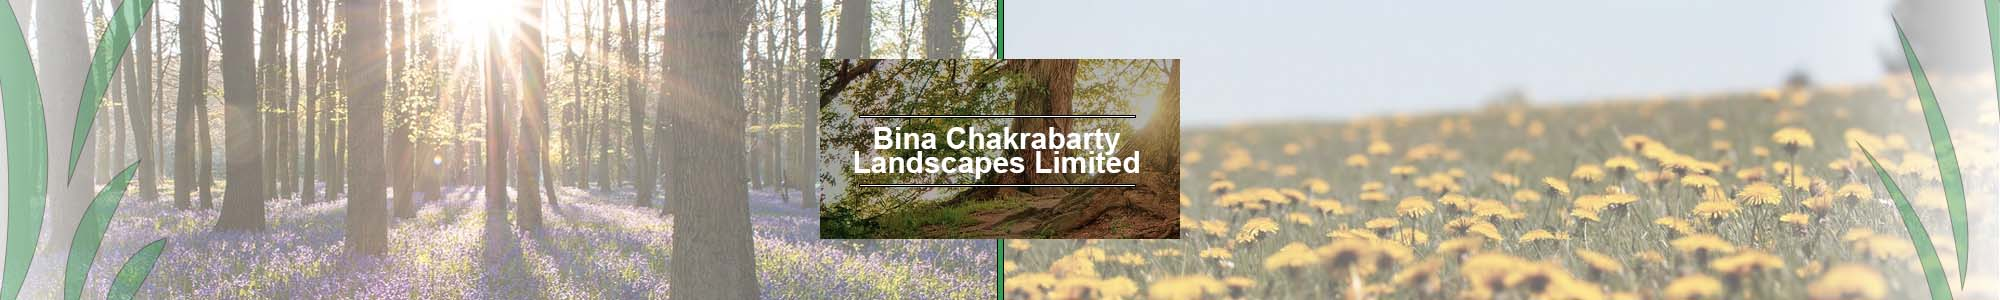 Bina Chakrabarty Landscapes Ltd.